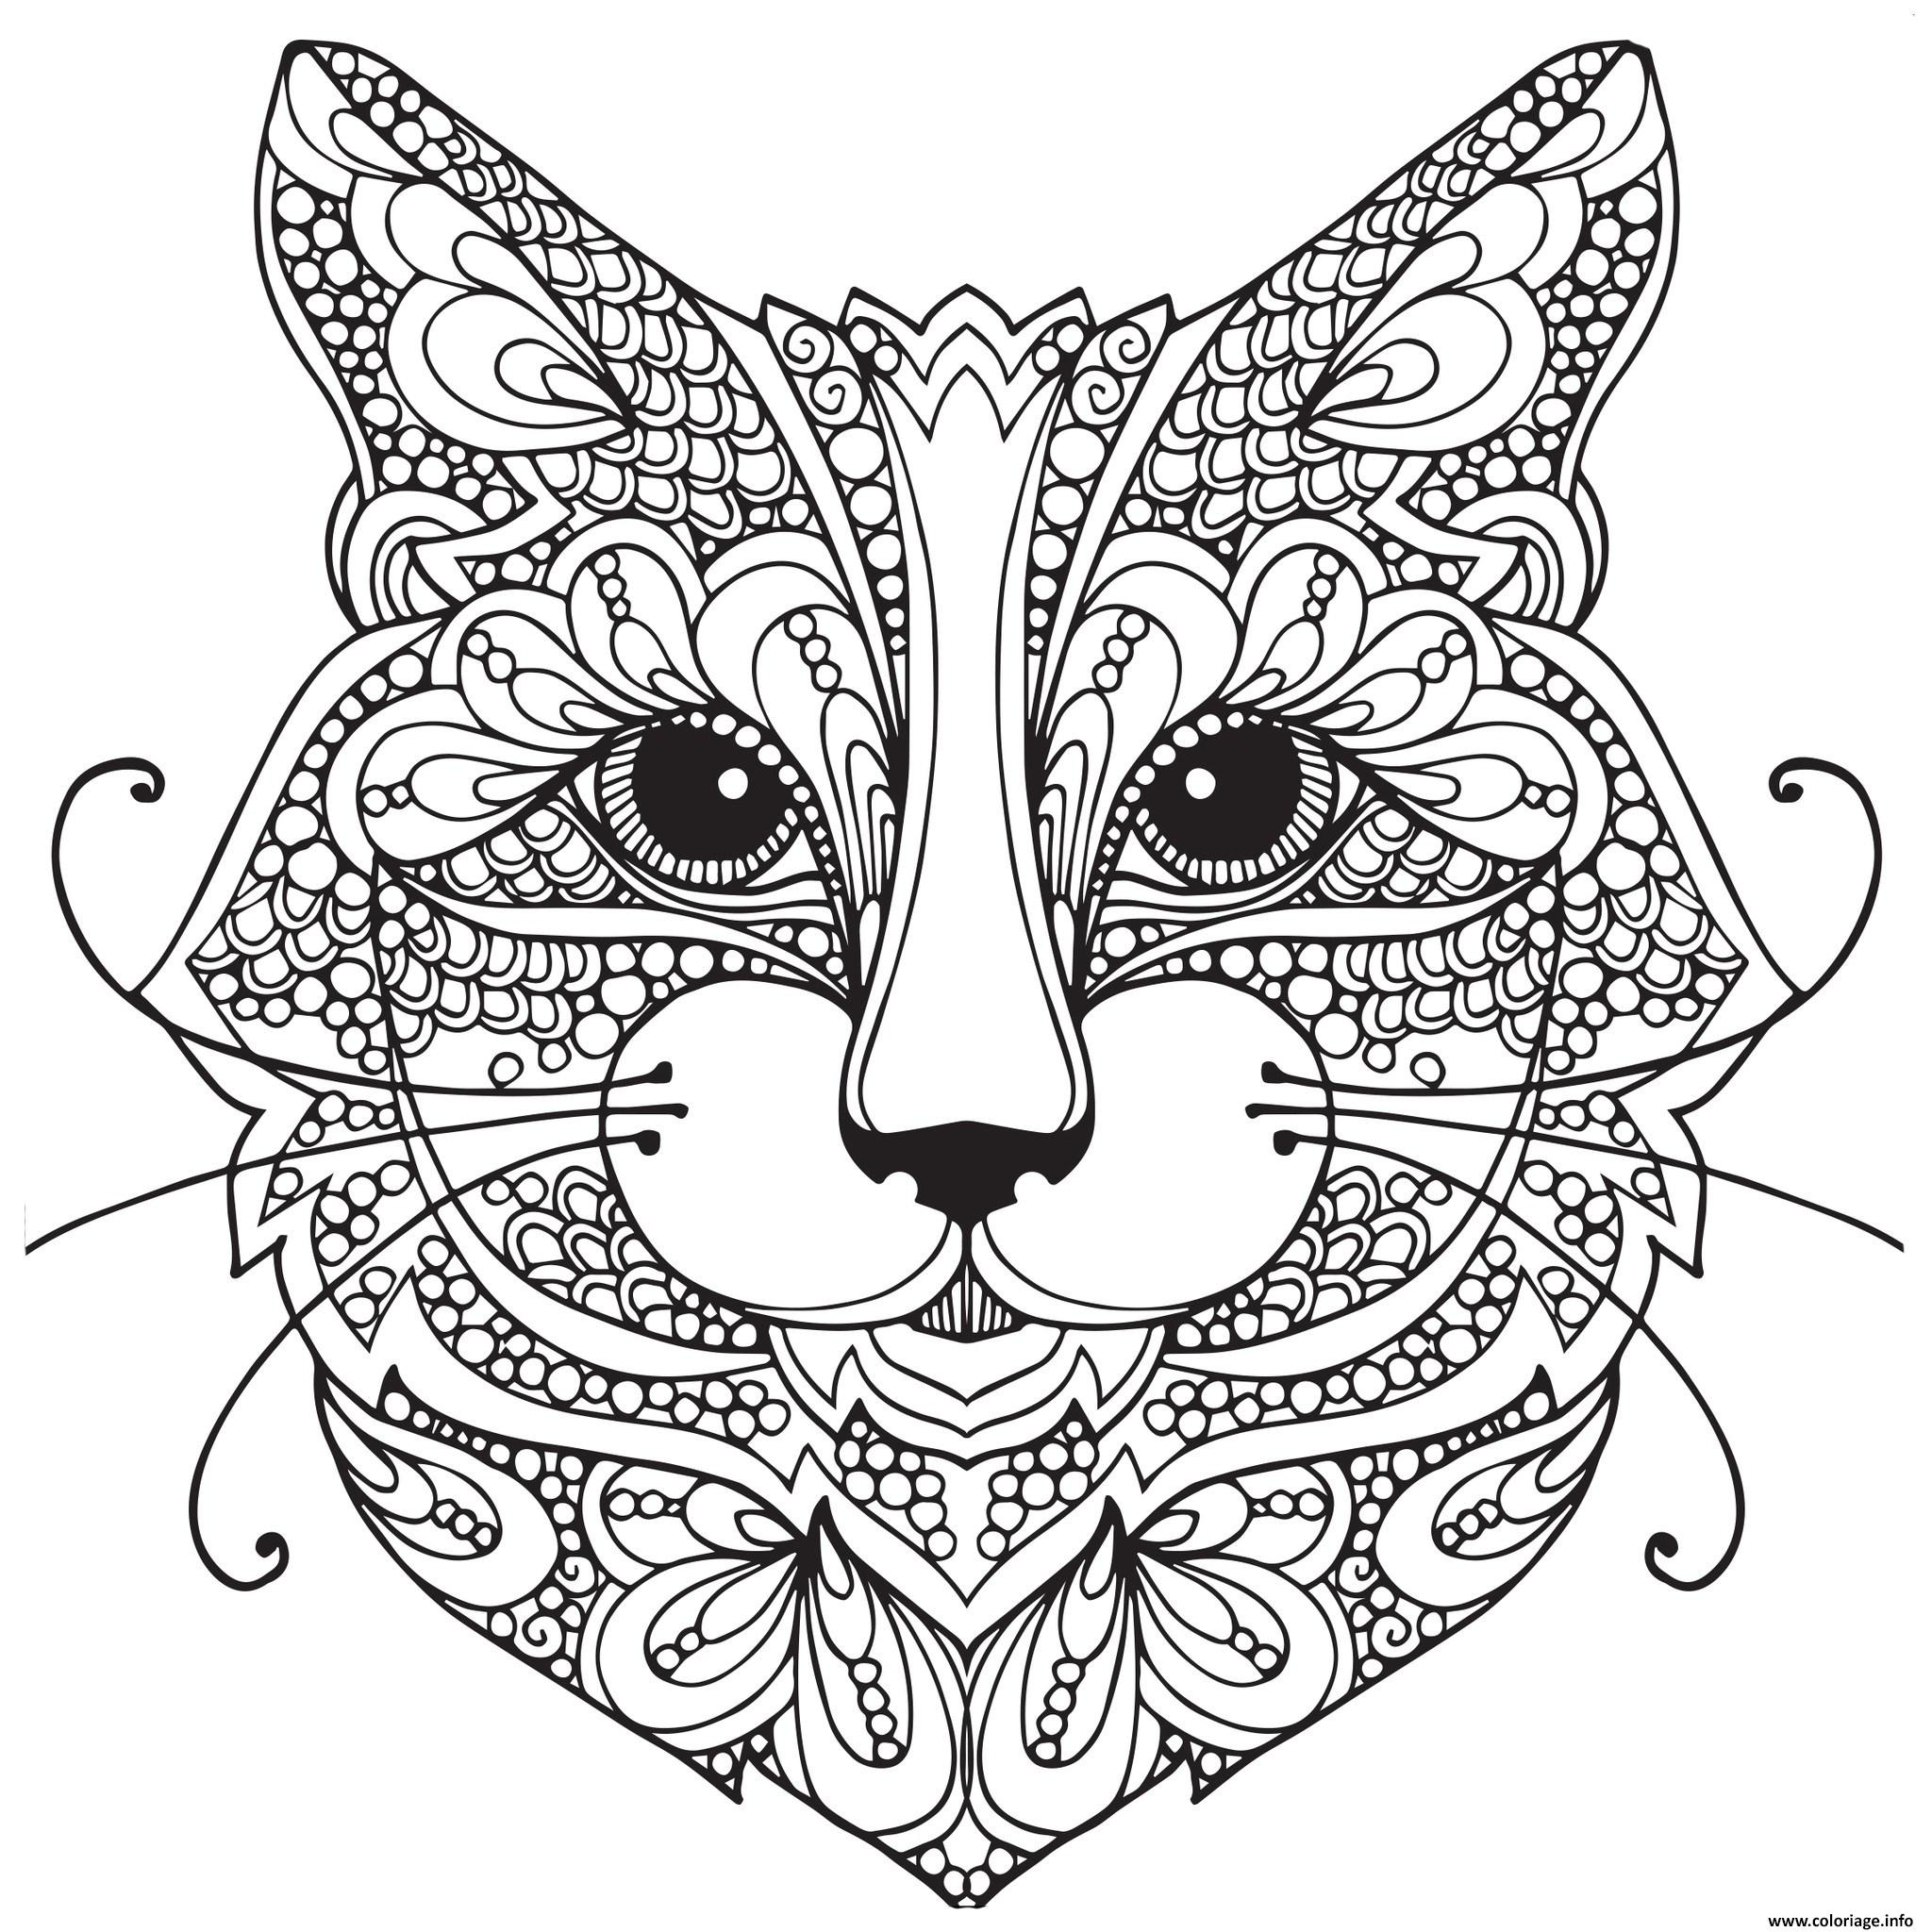 Coloriage Chat Adulte Difficile Visage Mandala Dessin